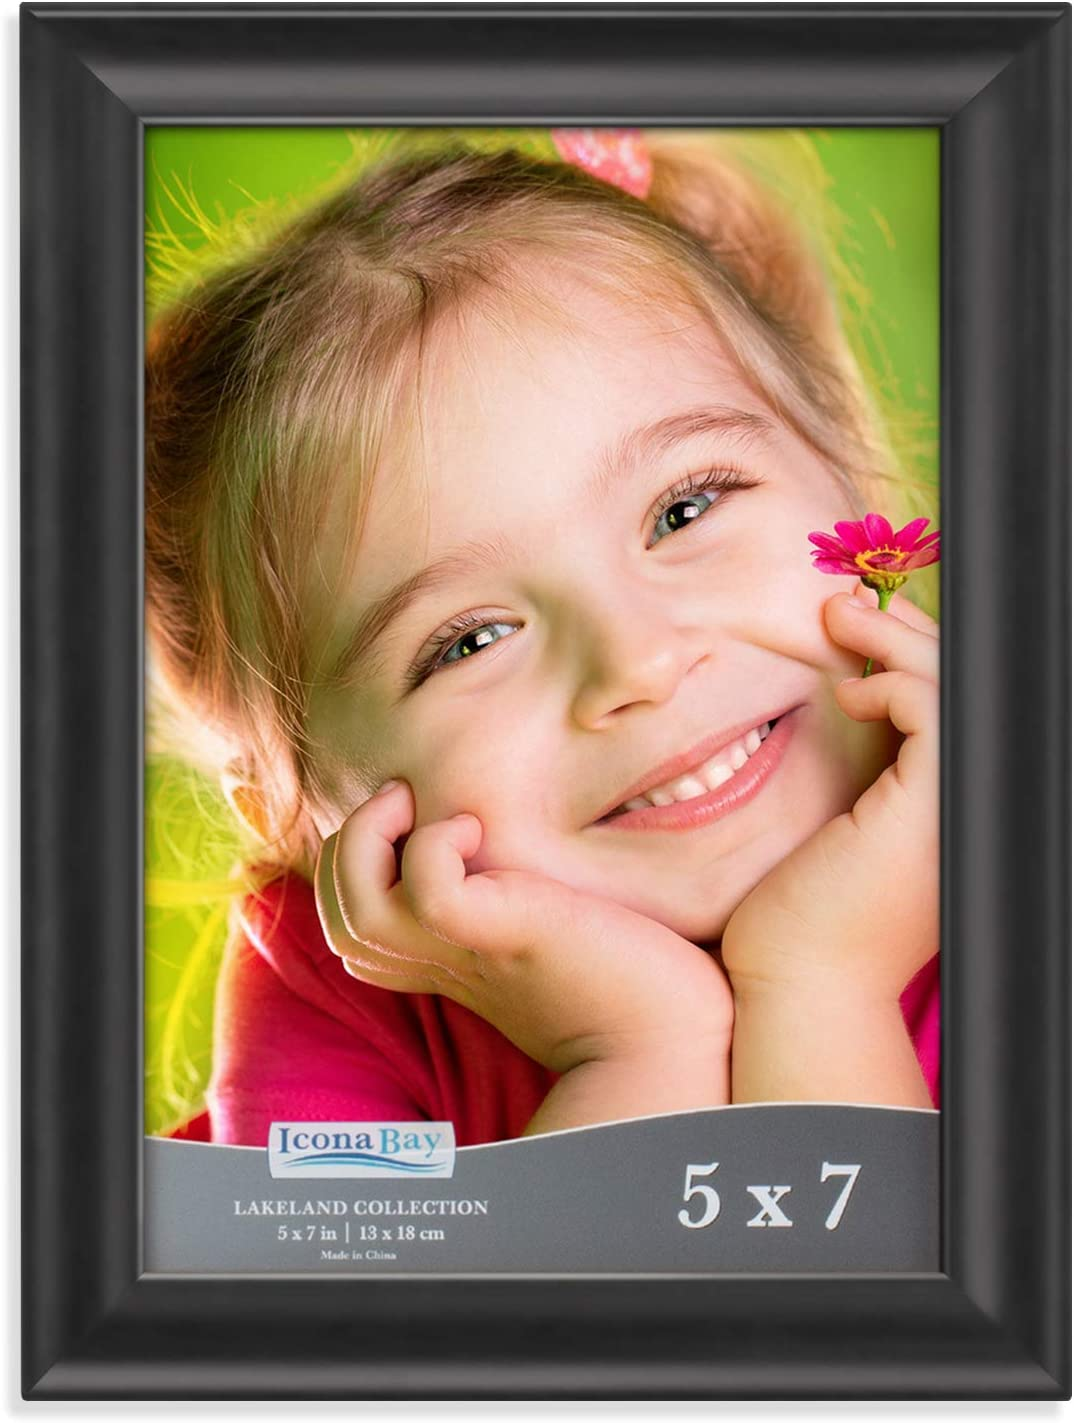 Icona Bay 5x7 Picture Frame (1 Pack, Black), Black Photo Frame 5 x 7, Composite Wood Frame for Walls or Tables, Lakeland Collection